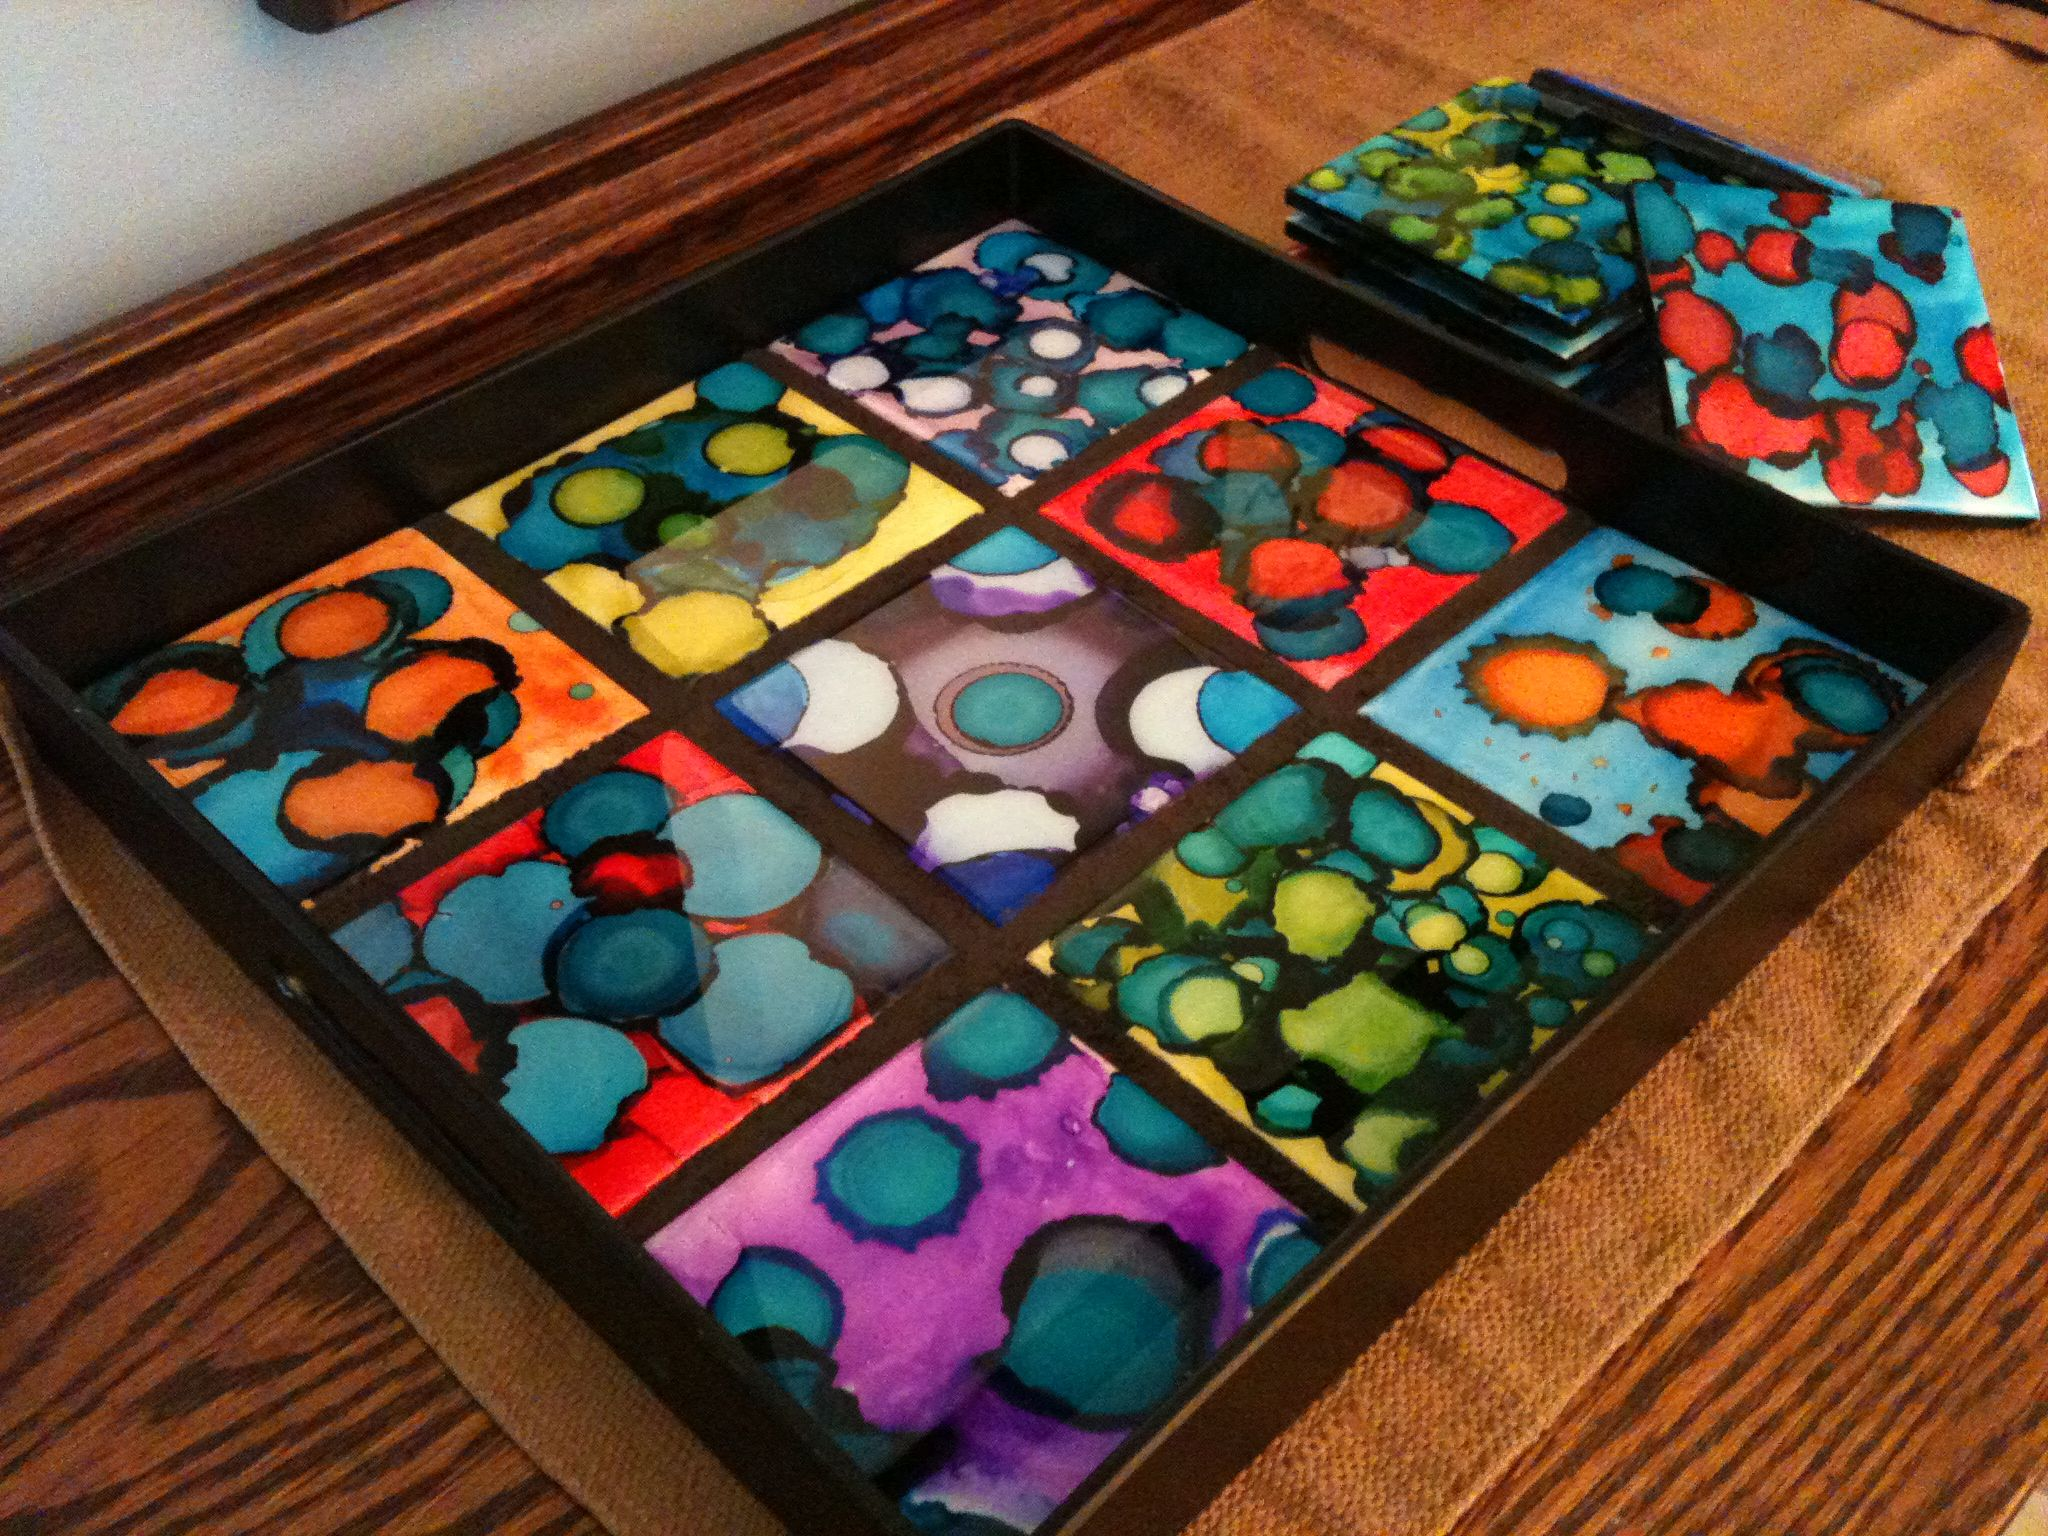 6th grade 2013 alcohol inks on ceramic tile resin coated 6th grade 2013 alcohol inks on ceramic tile resin coated serving tray and coaster dailygadgetfo Images